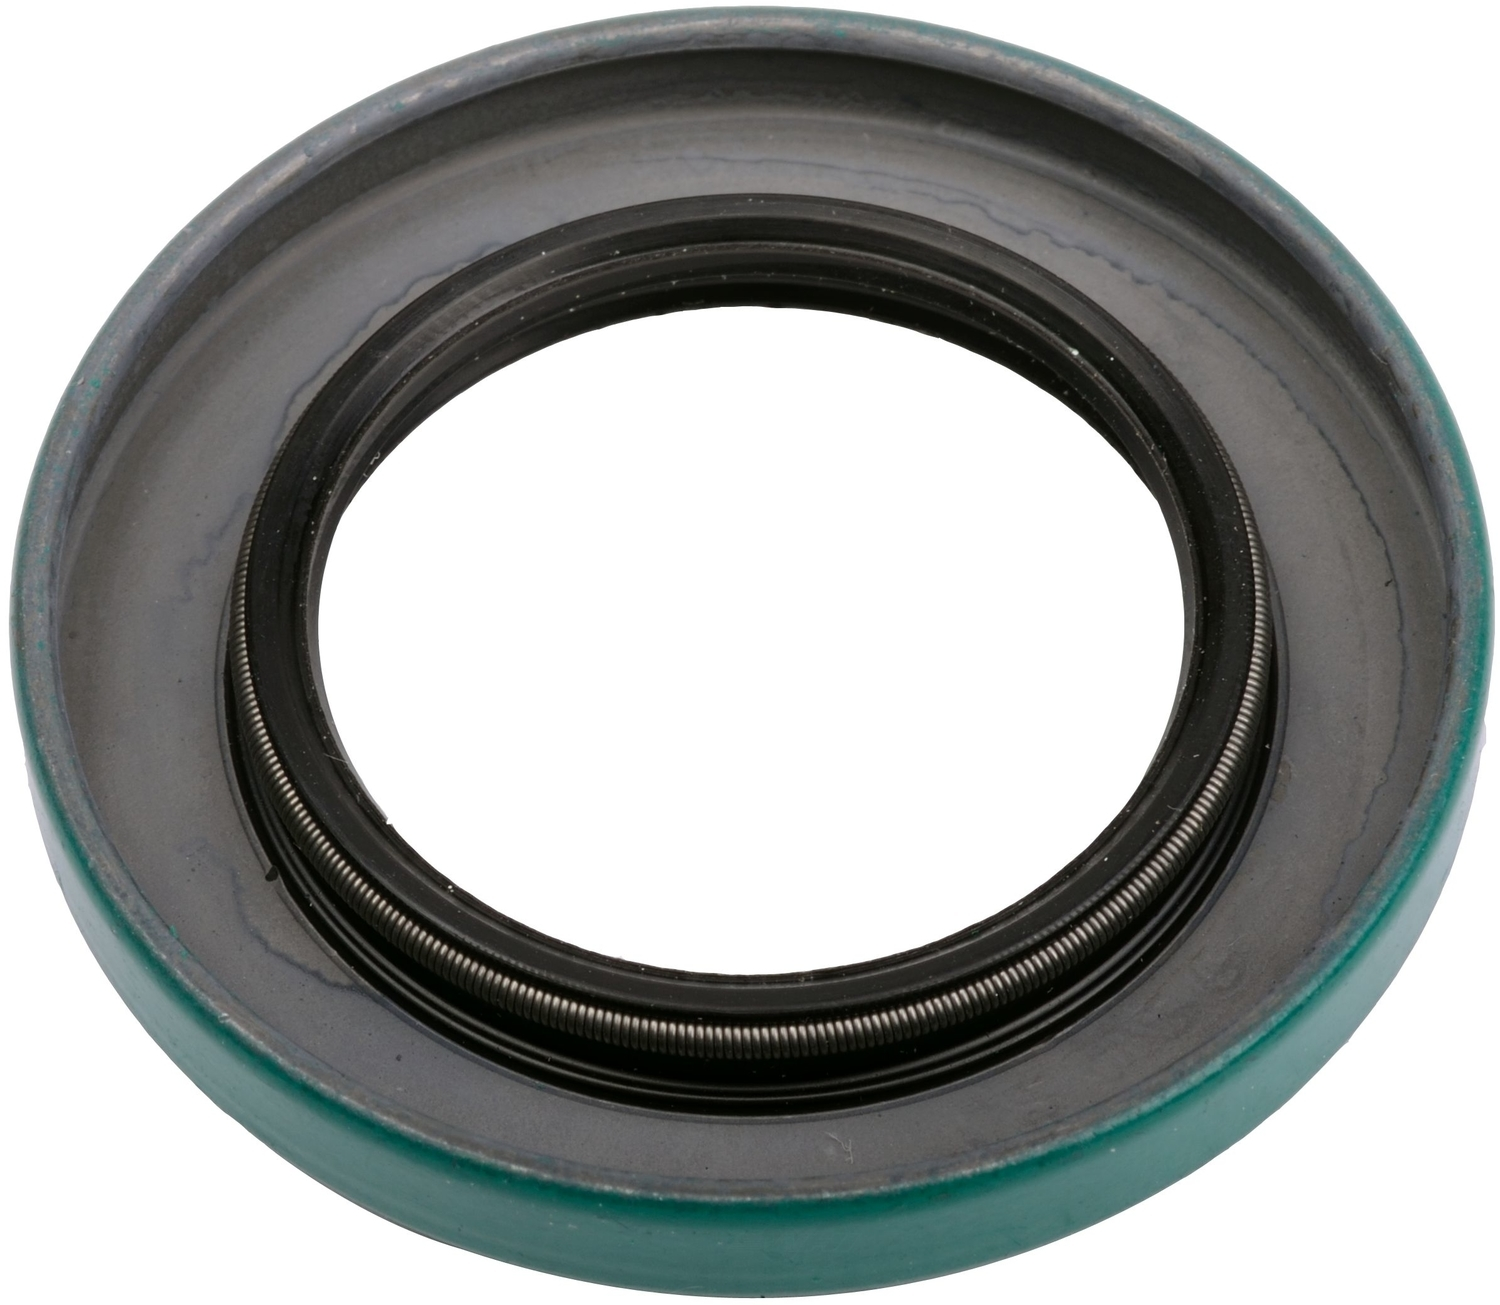 SKF (CHICAGO RAWHIDE) - Auto Trans Oil Pump Seal - SKF 17753